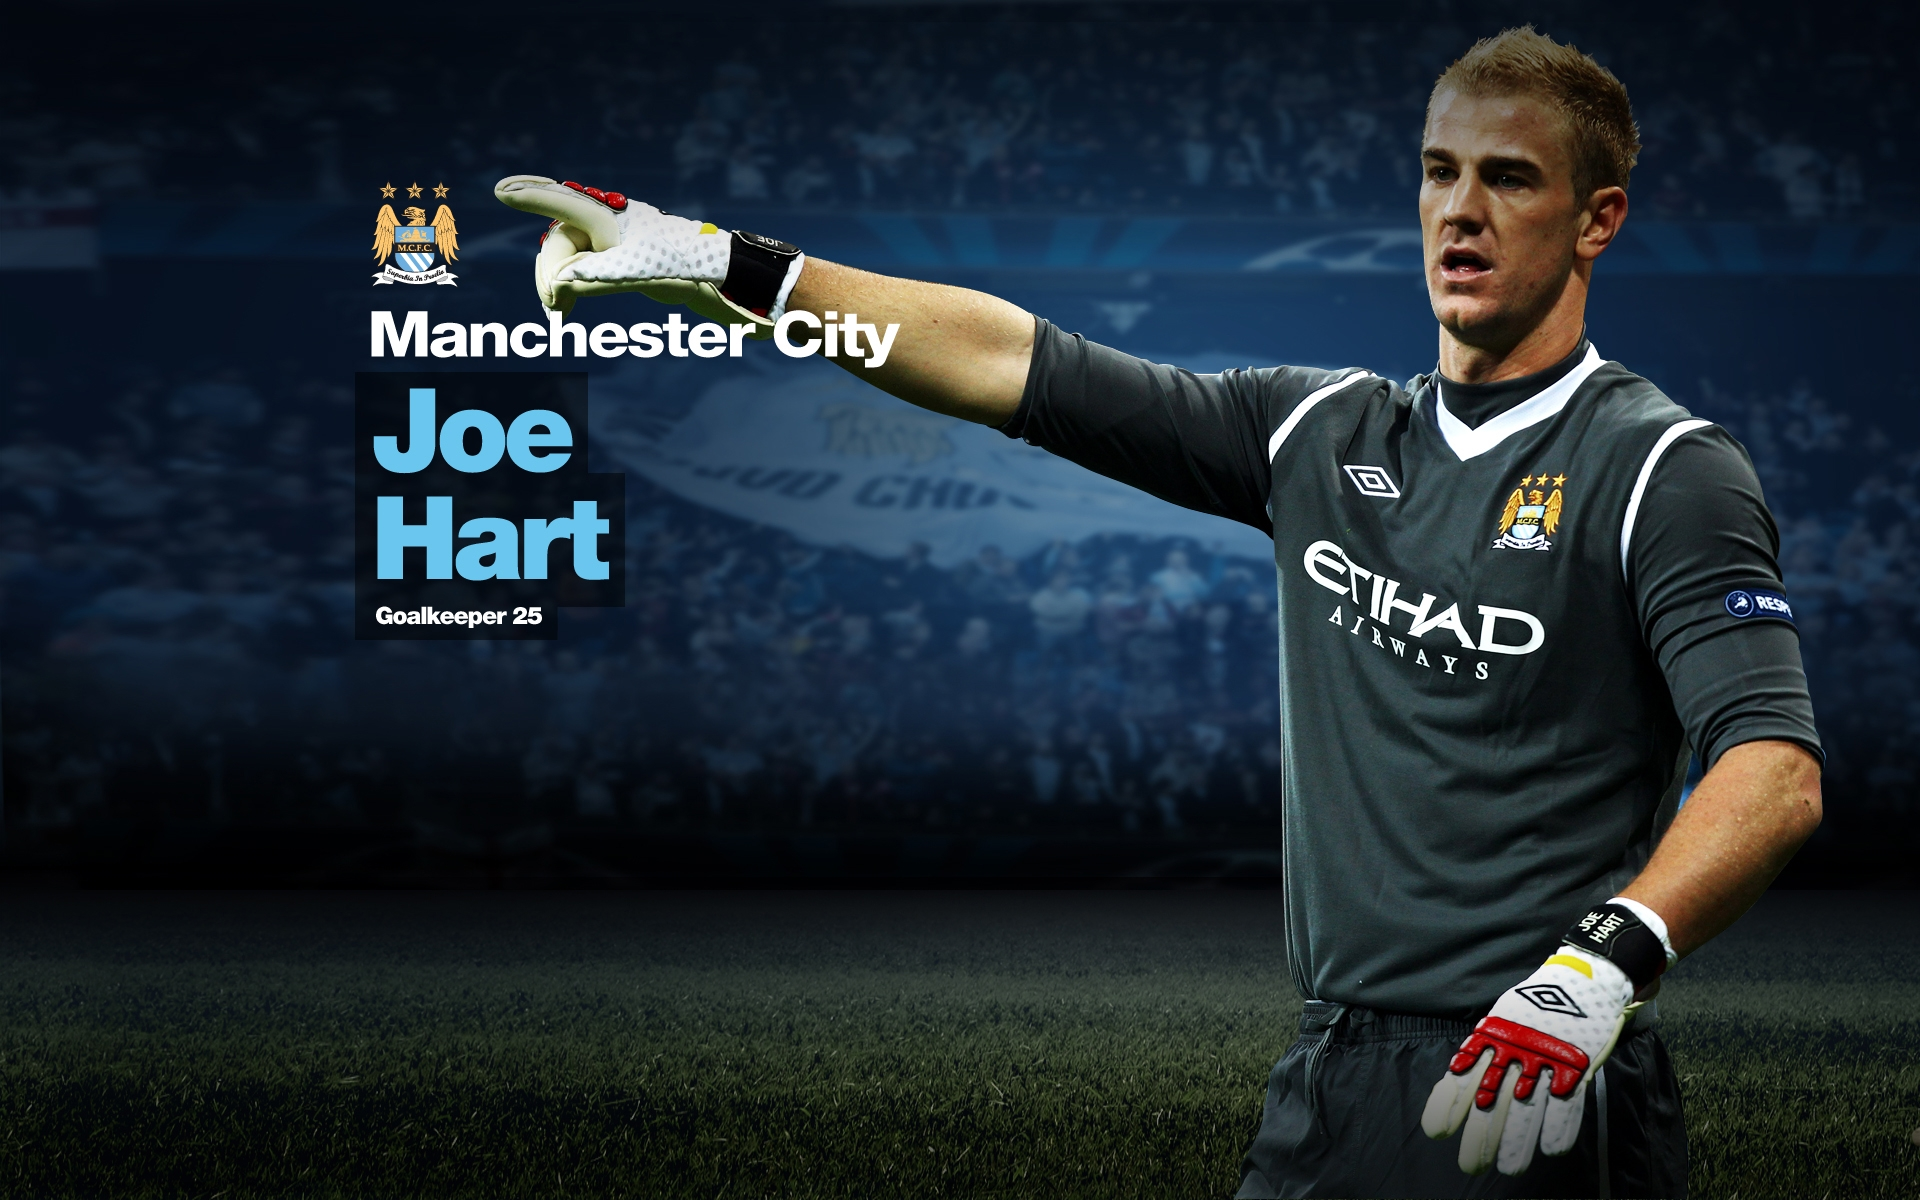 Joe Hart Manchester City Wallpaper 2015